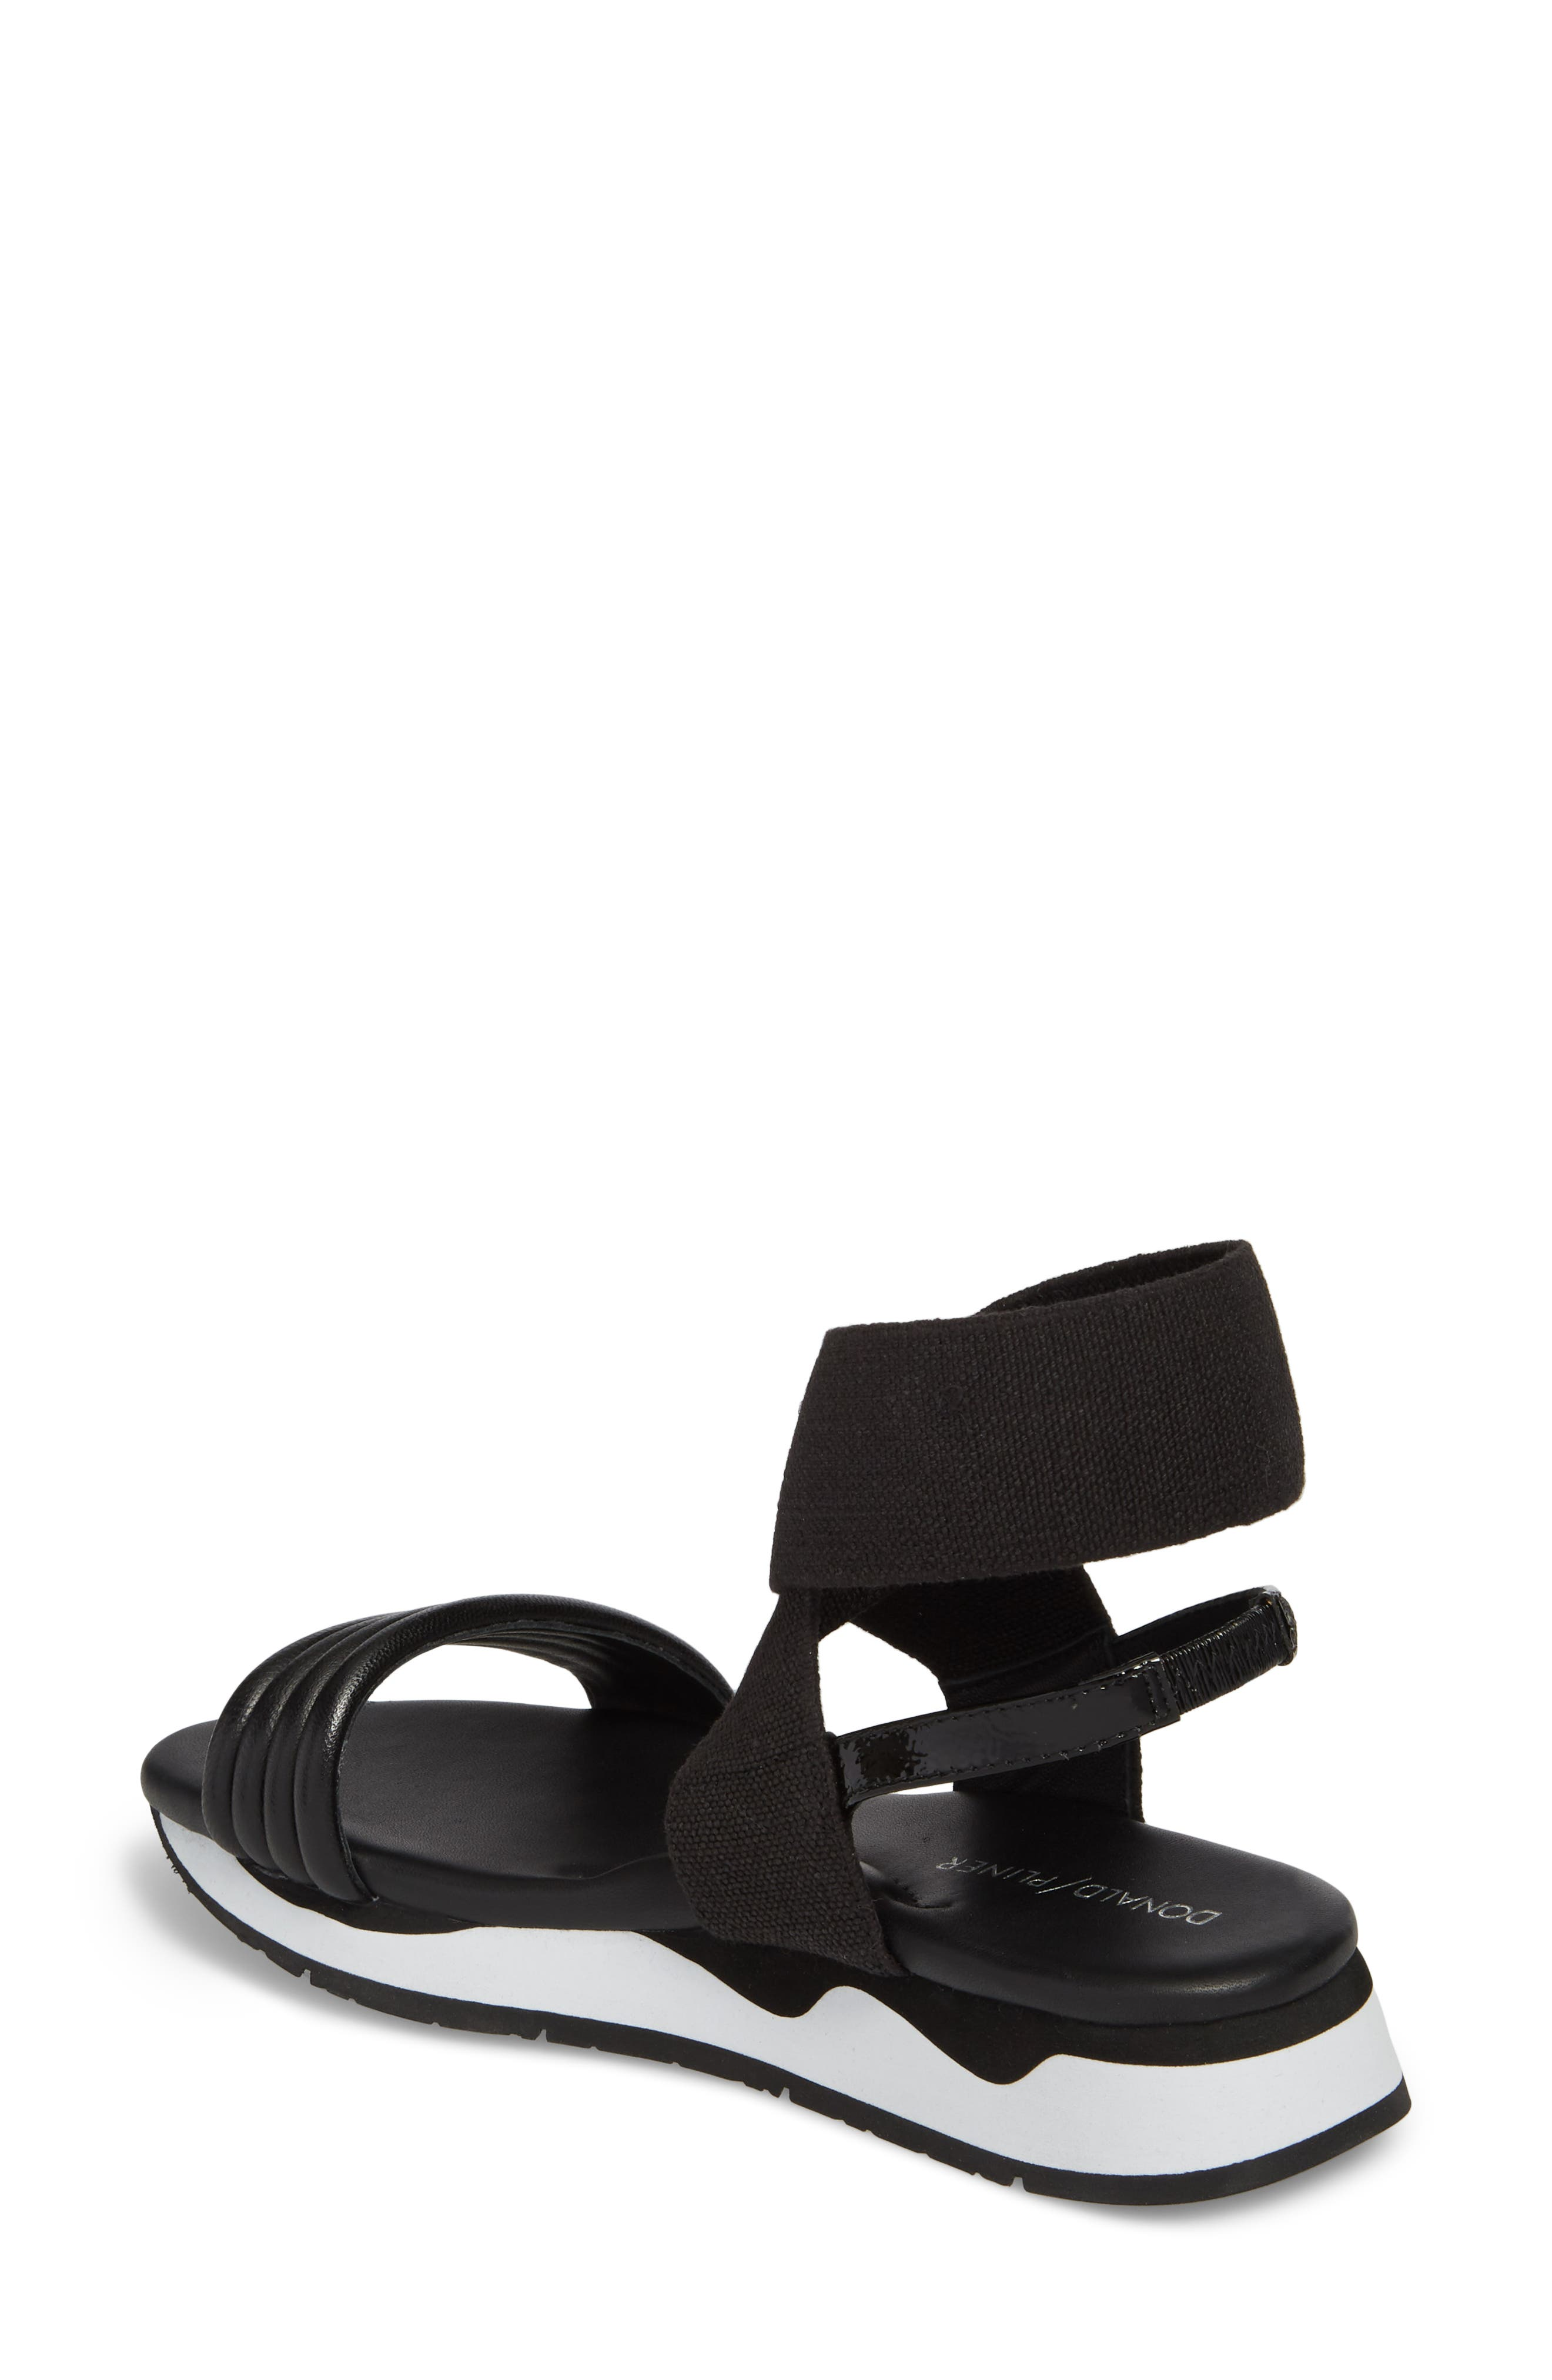 Shaye Ankle Strap Sandal,                             Alternate thumbnail 2, color,                             Black Leather